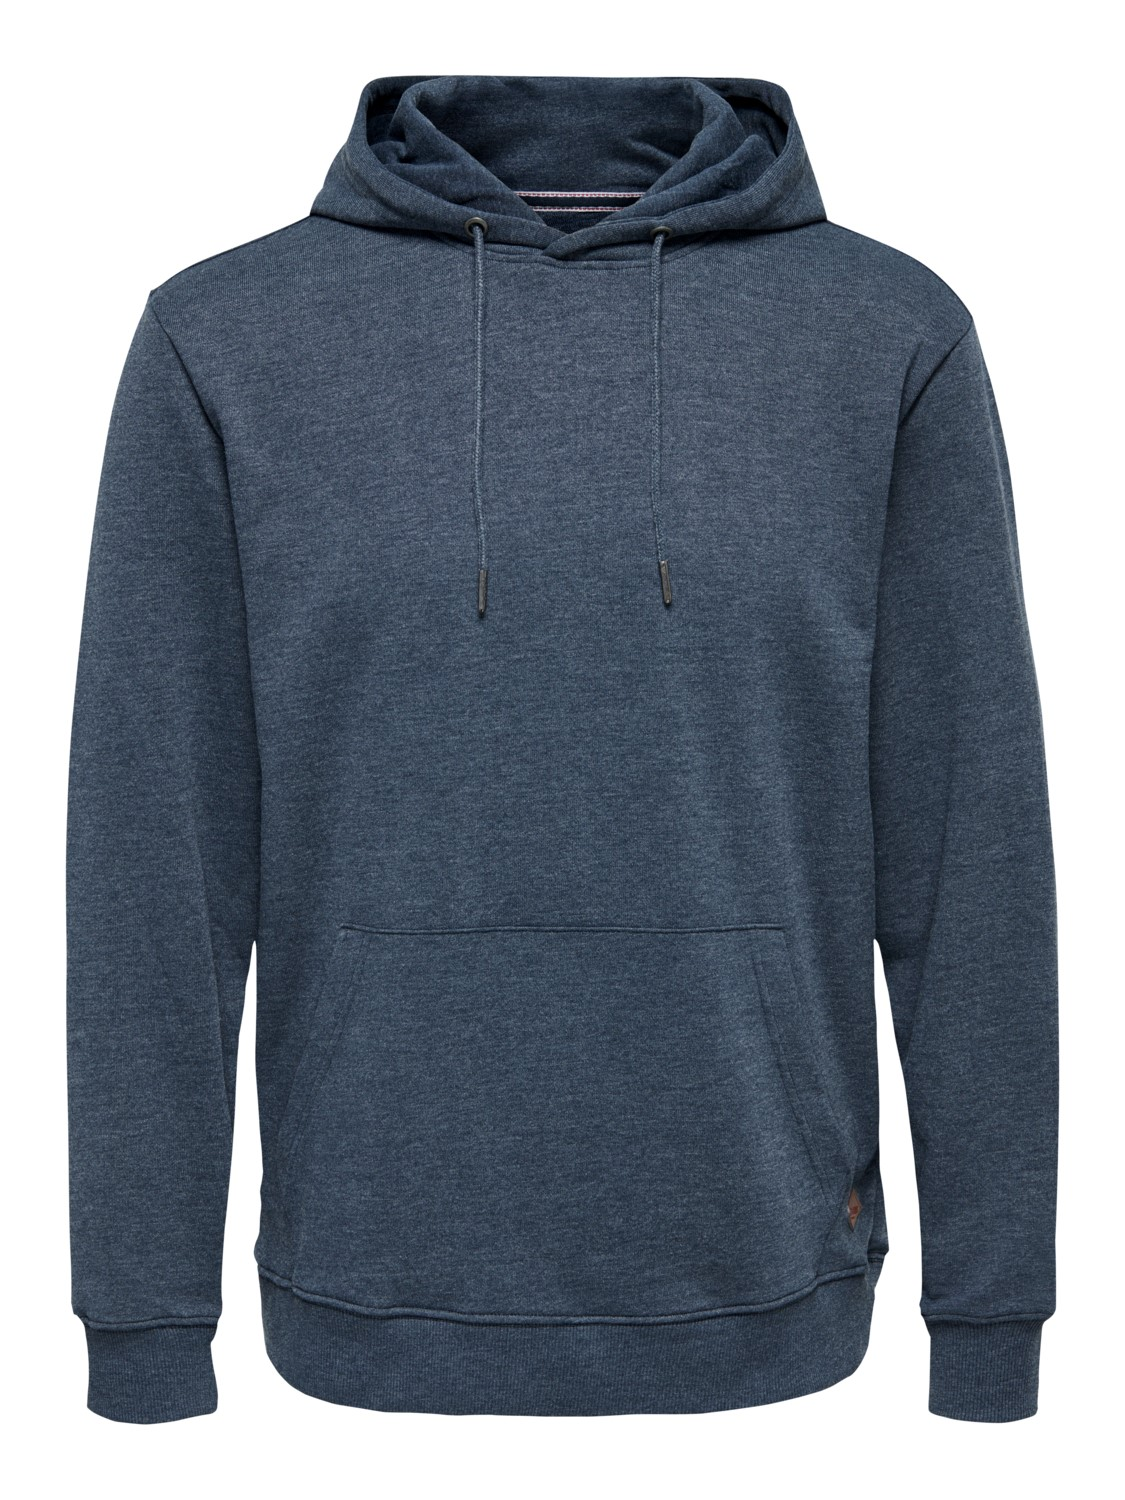 ONLY & SONS Hoodie Winston in 3 Farben